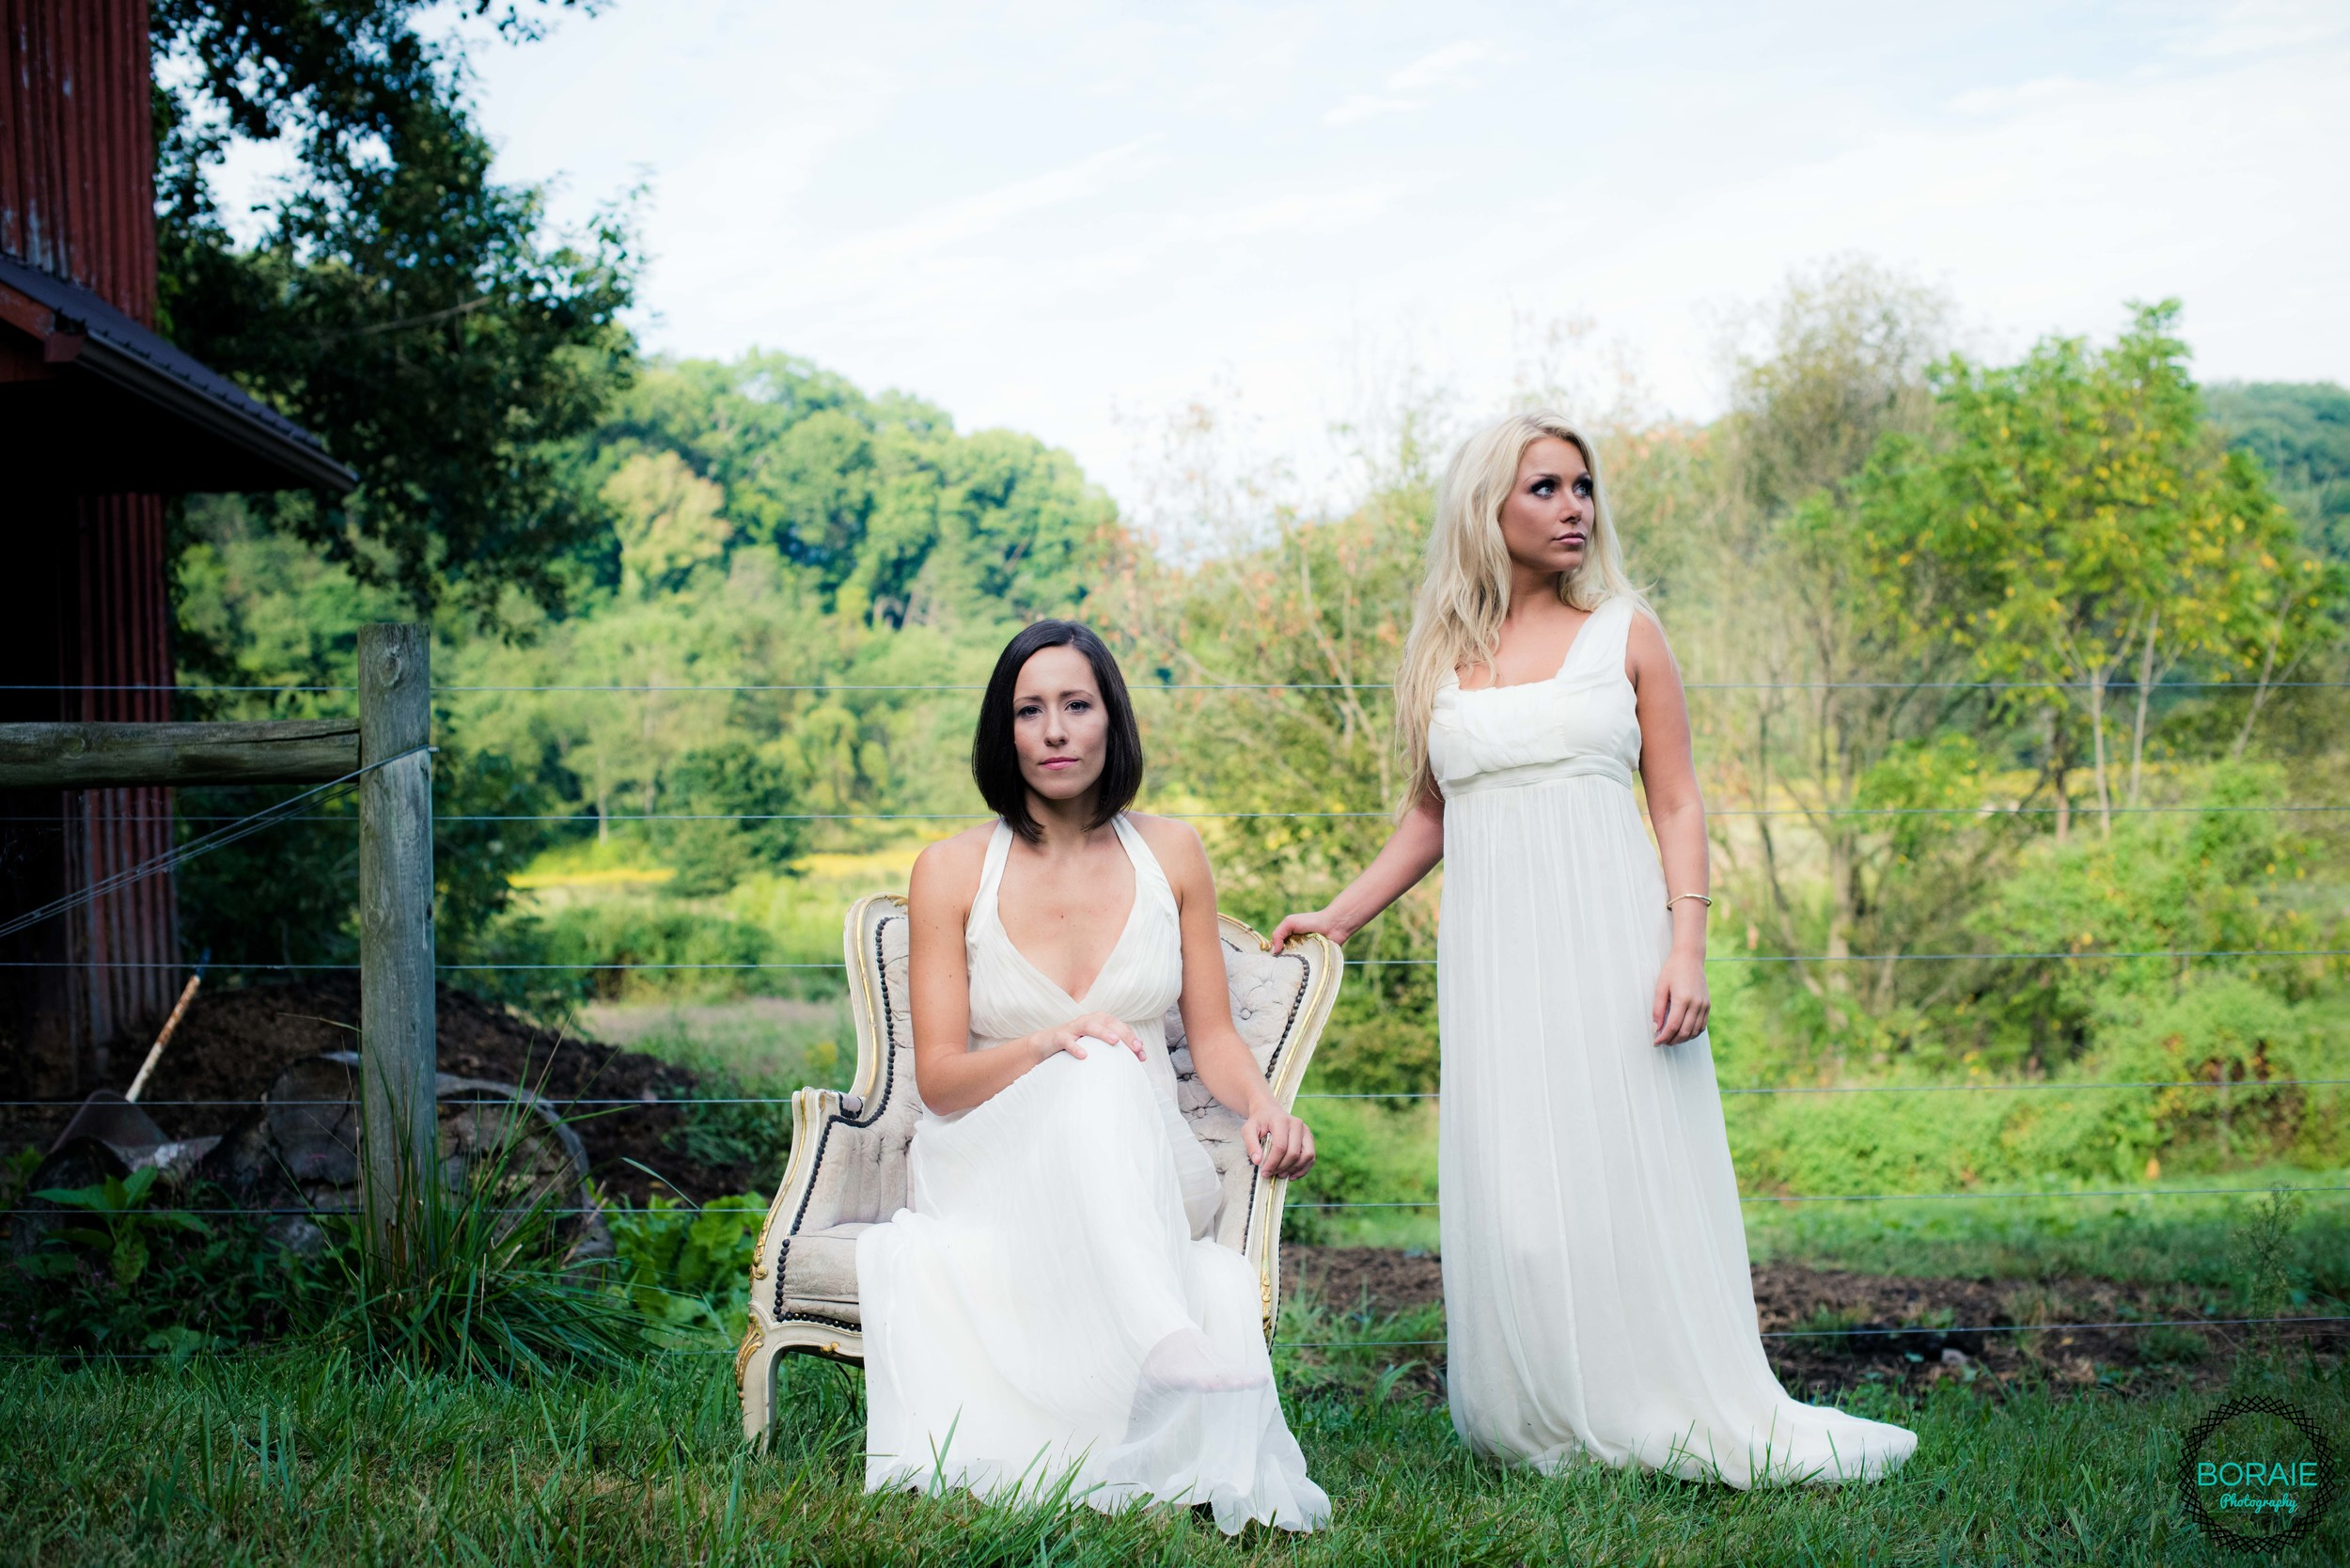 DC, Virginia and Maryland wedding photographer www.boraiephotography.com